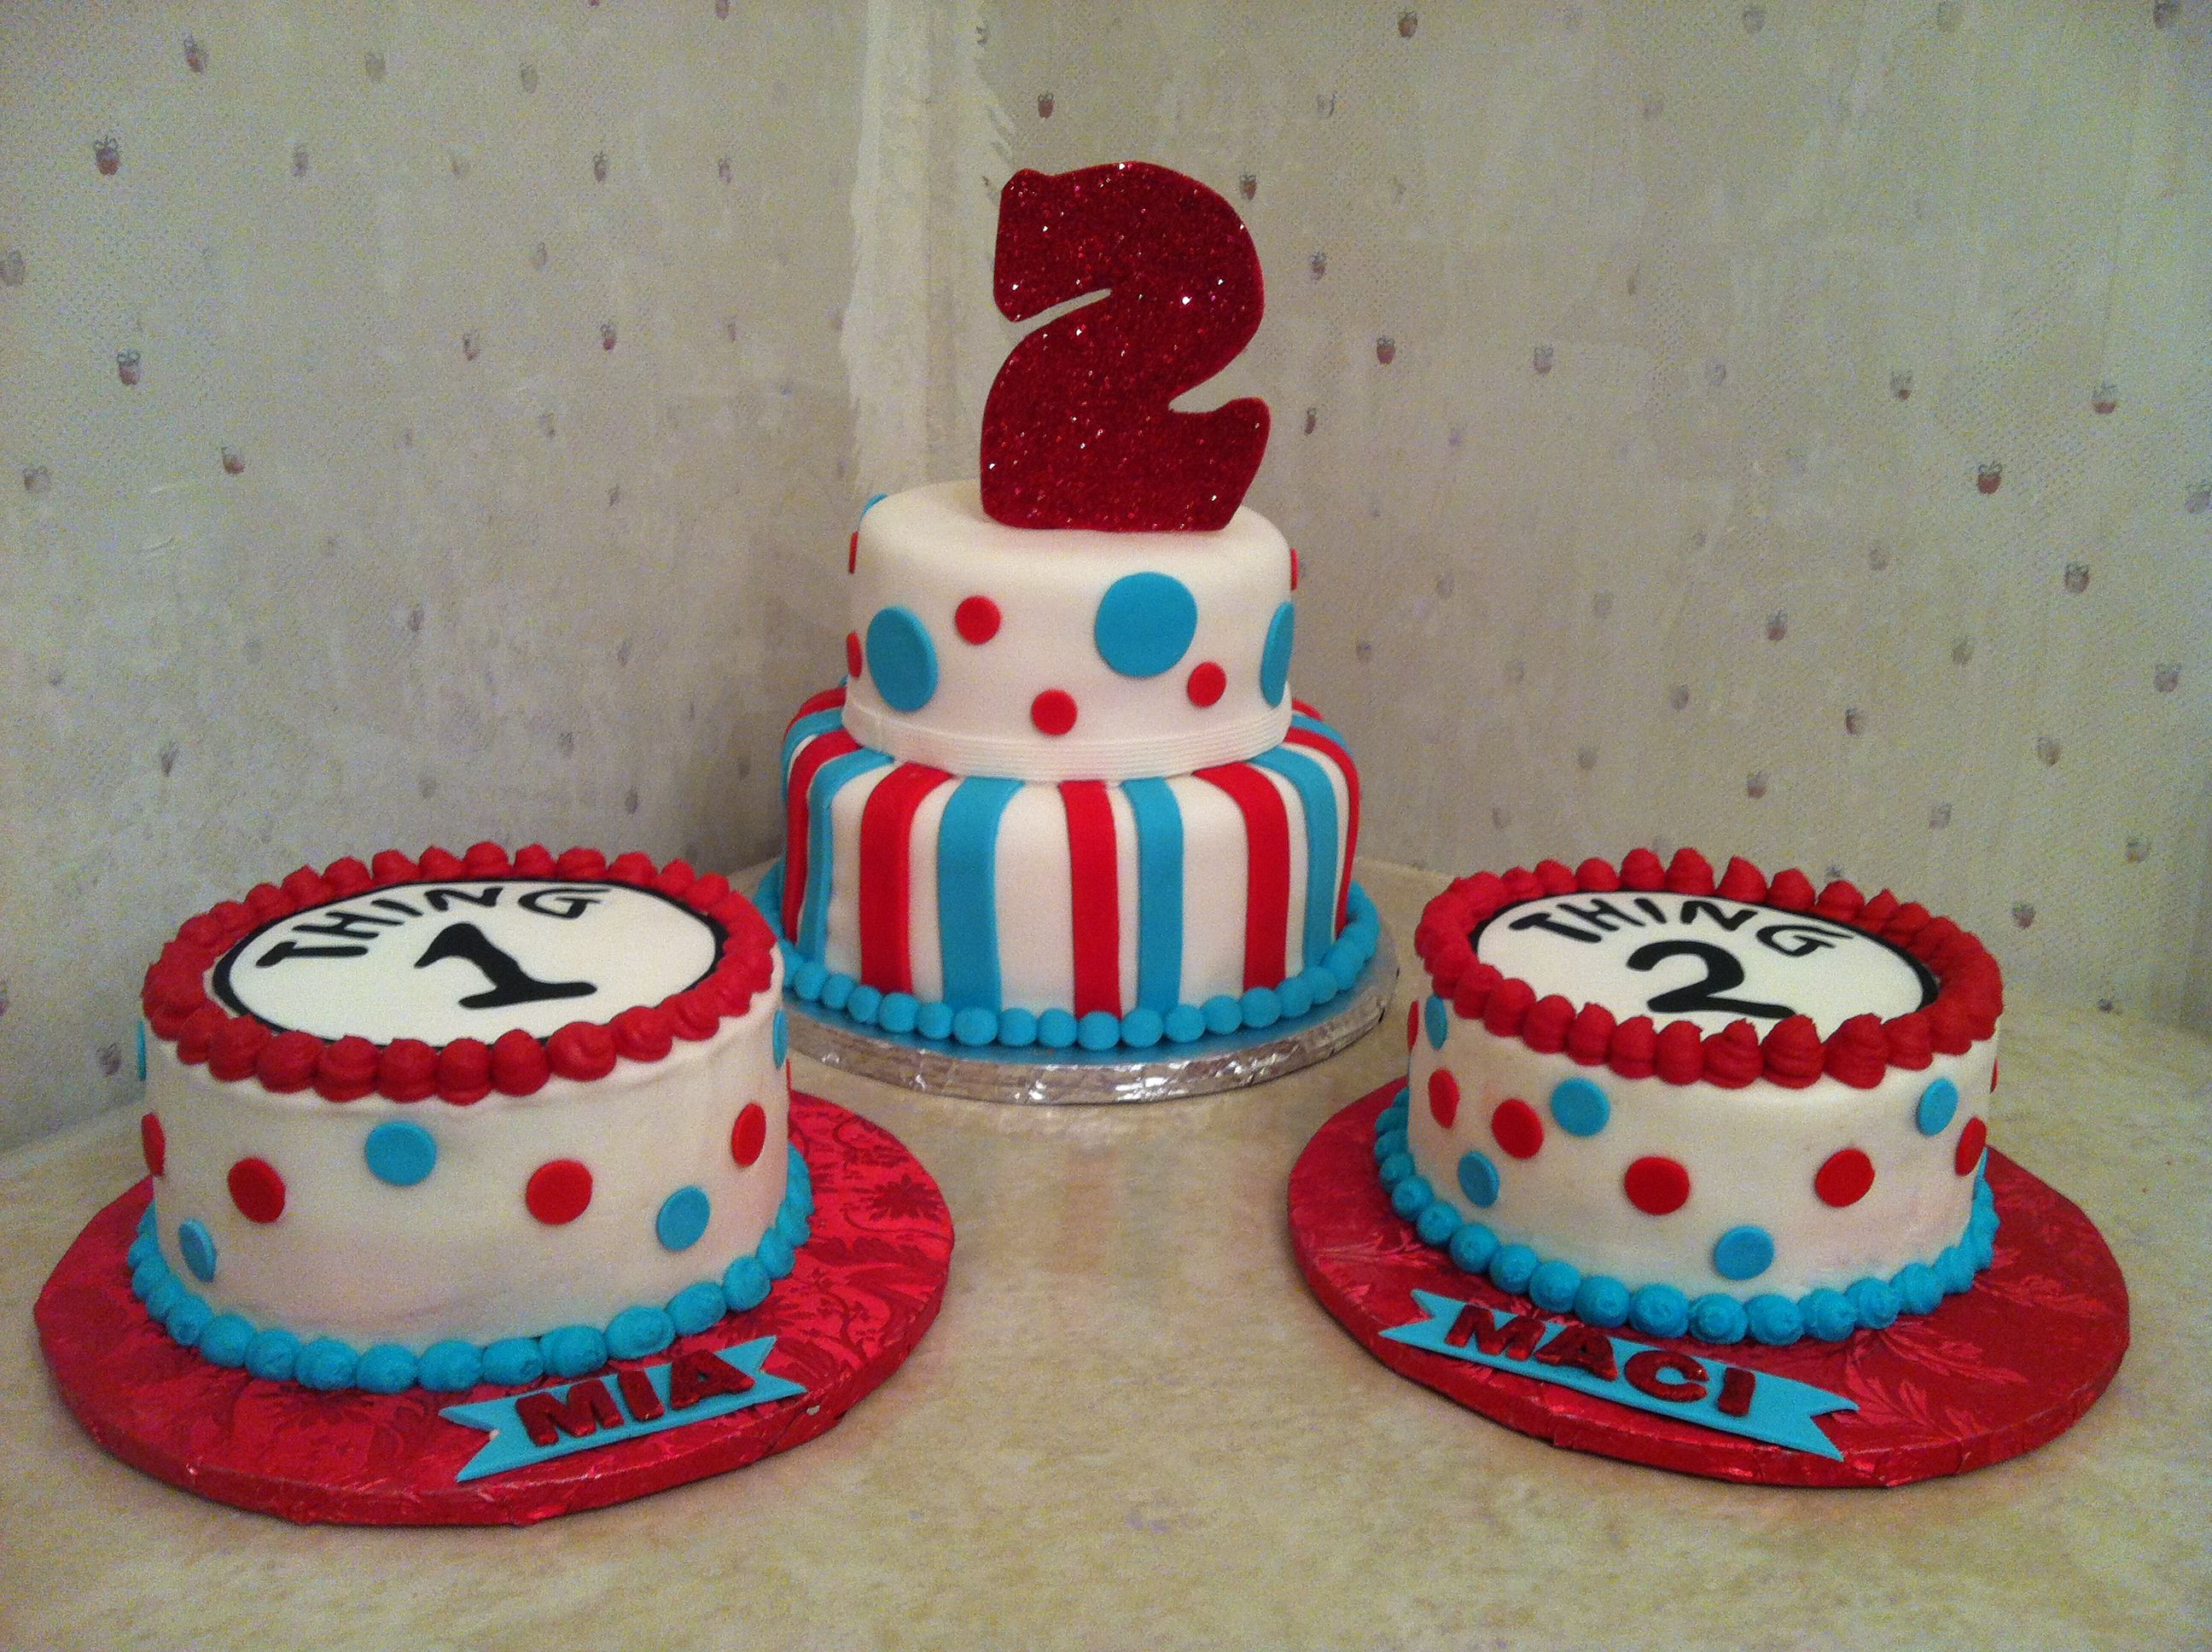 Thing  Thing  Nd Birthday Cake With Smash Cakes To Go With For - 2nd birthday cake designs